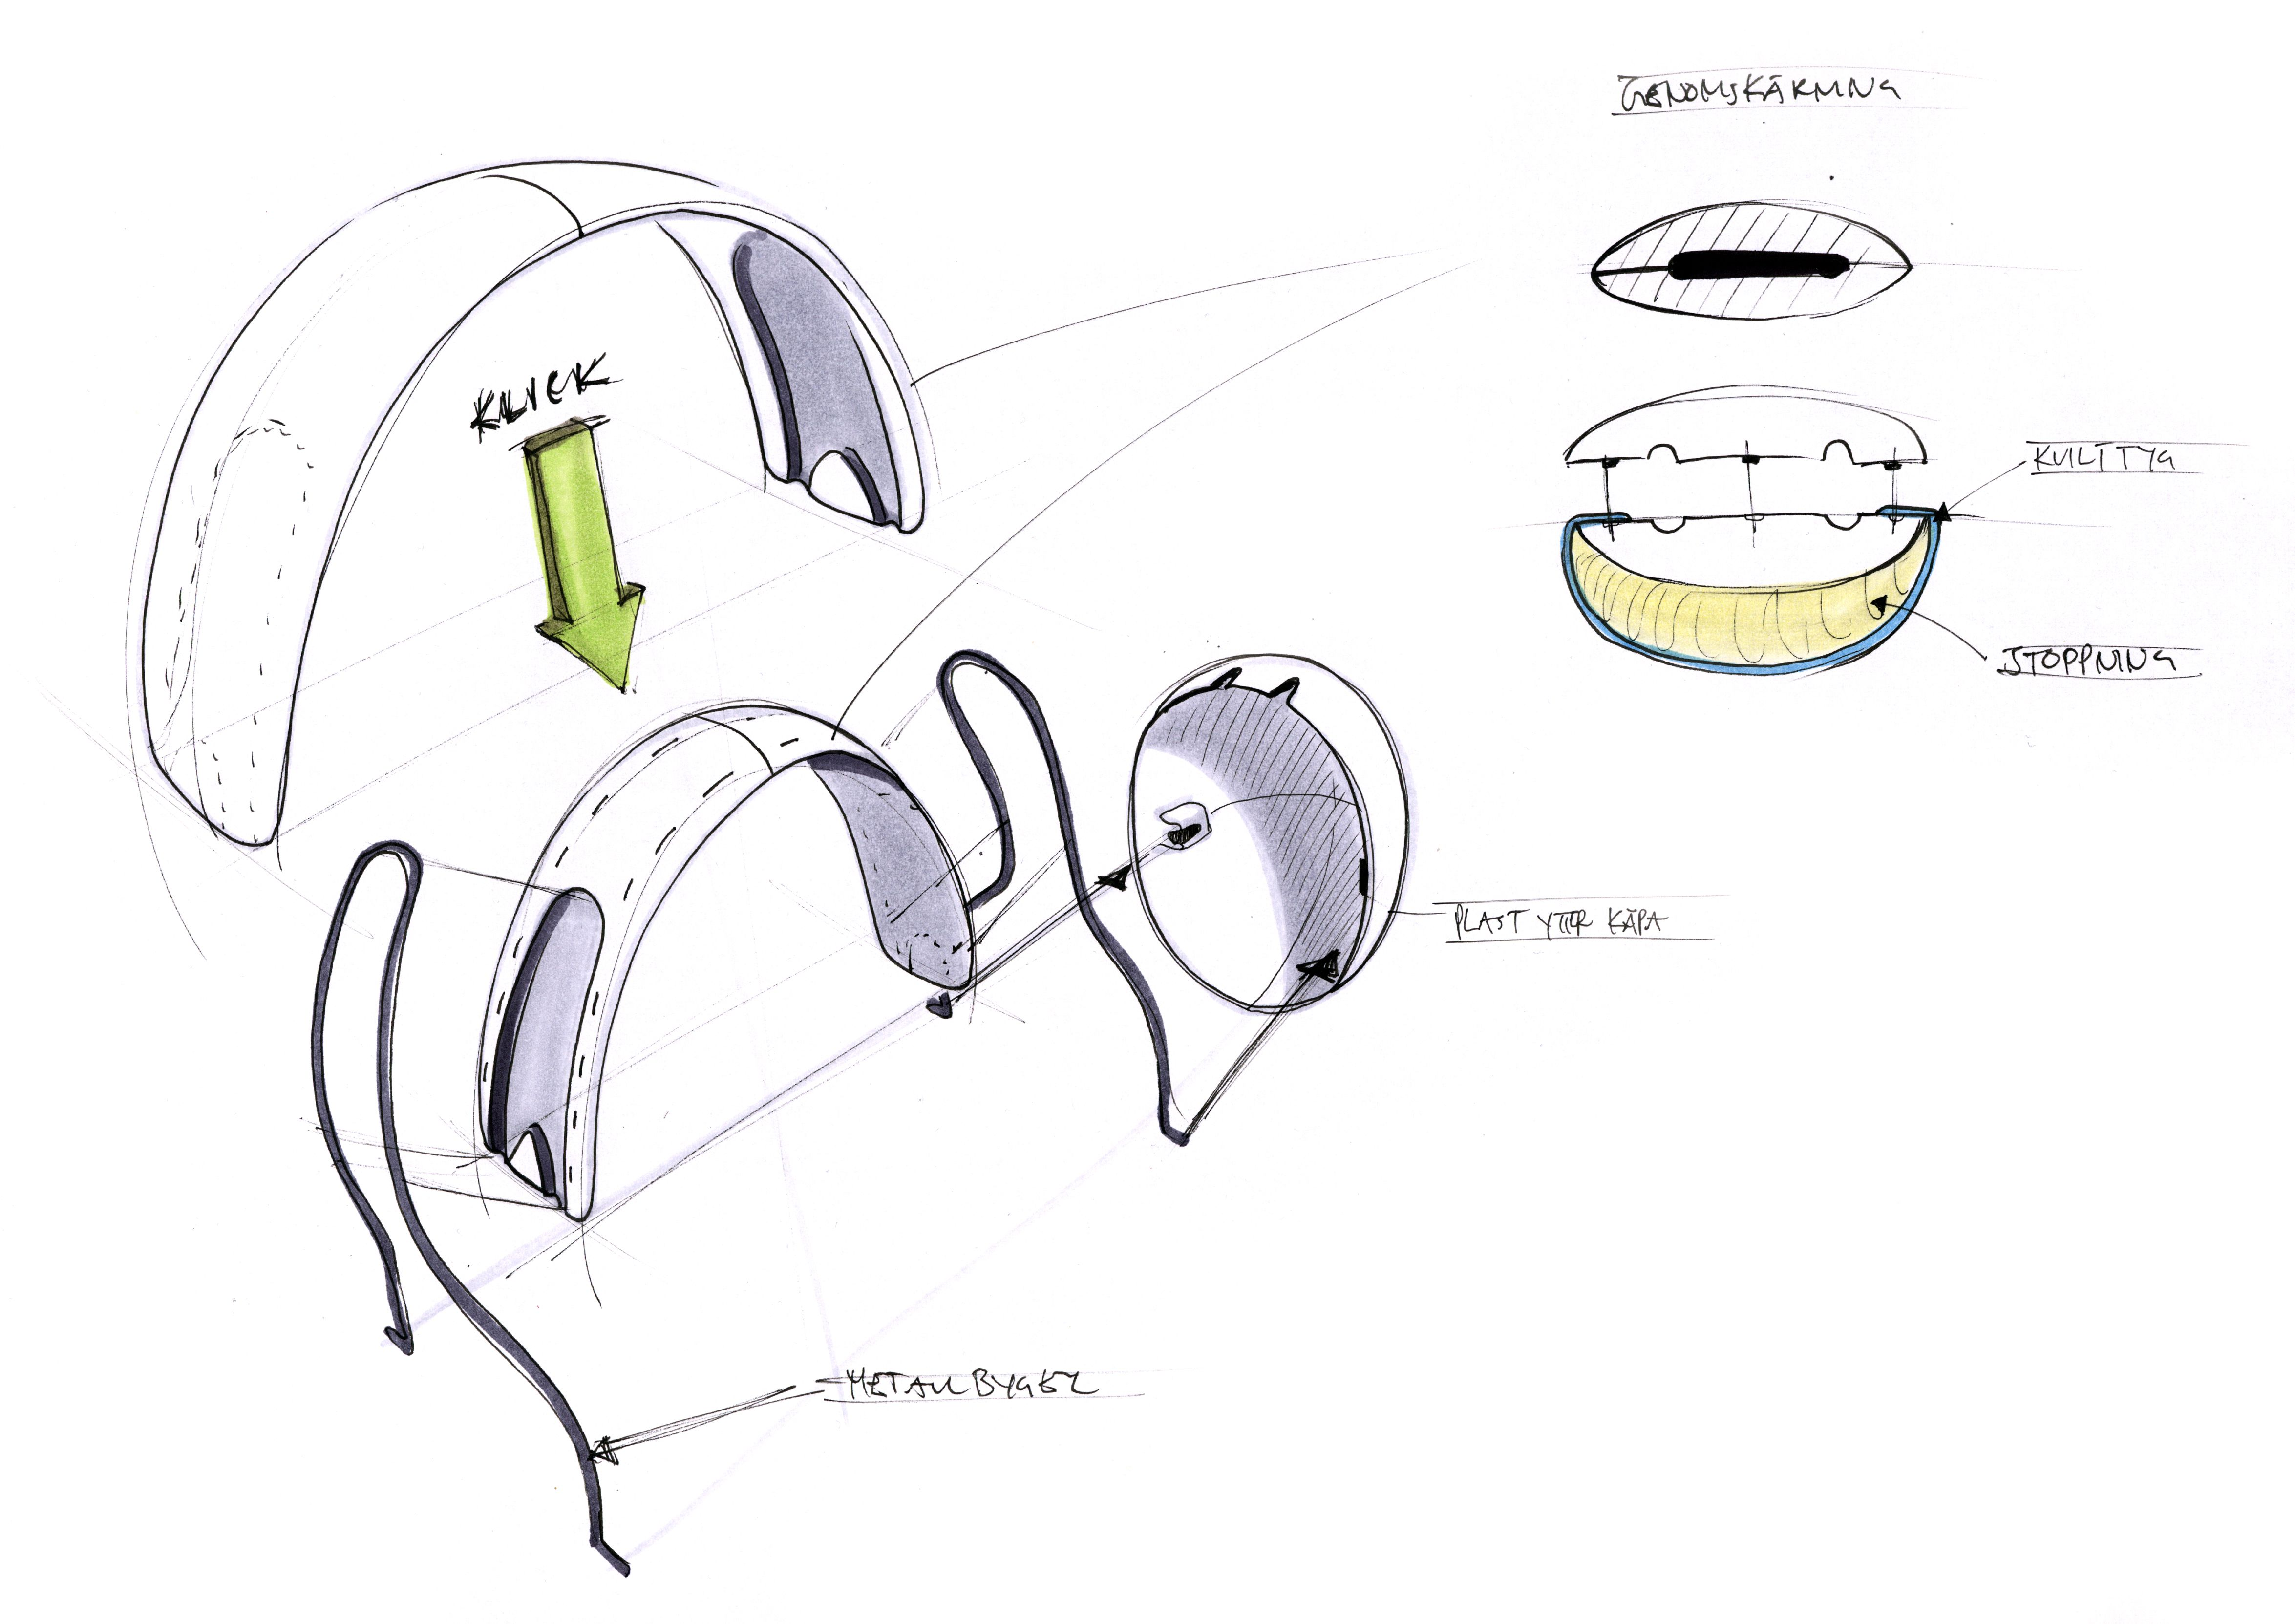 exploded view headphone project sketch [ 4698 x 3324 Pixel ]